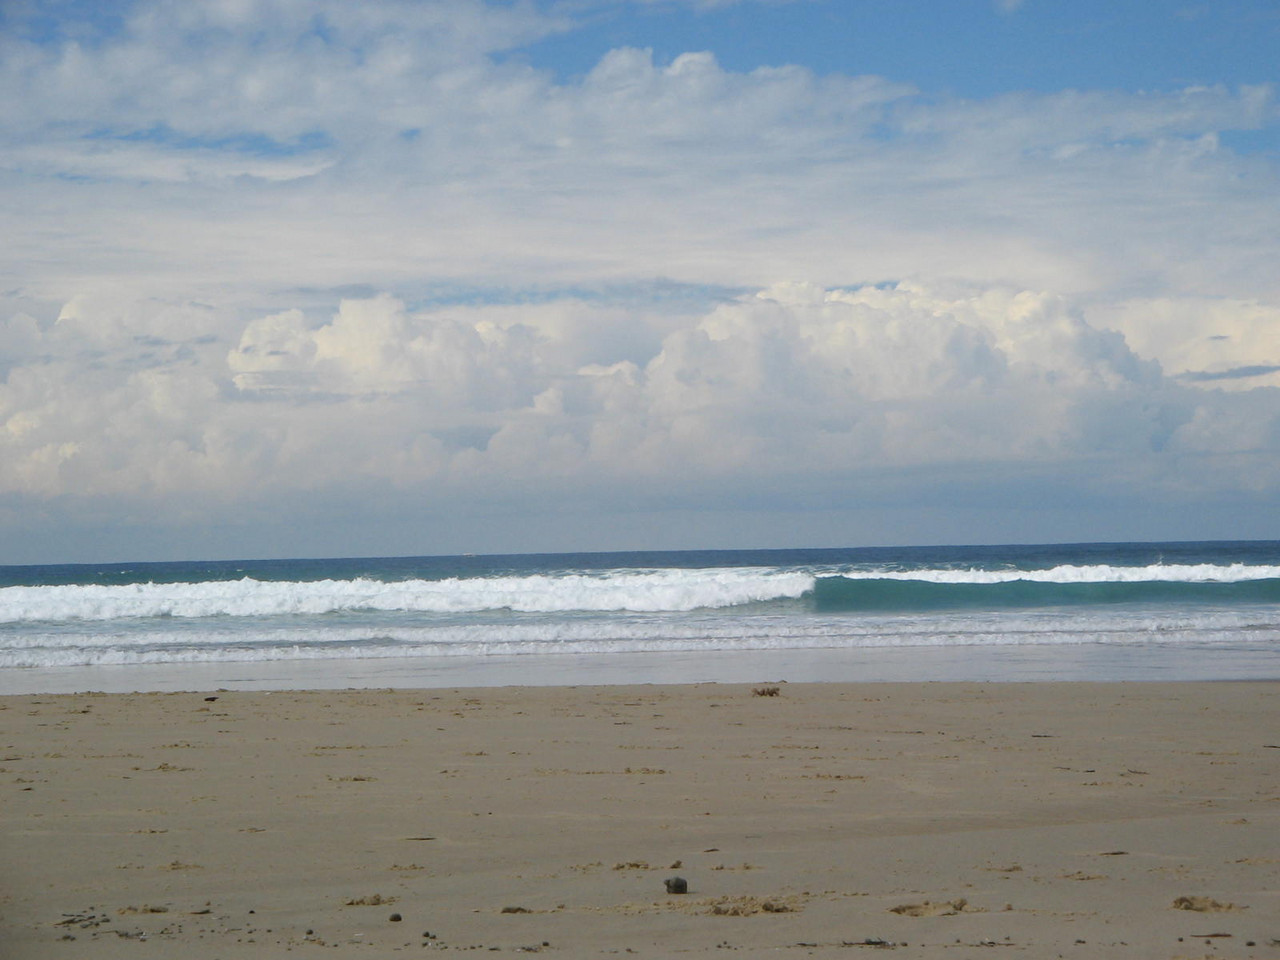 sunshine coast: where i pretended to go surfing this weekend.